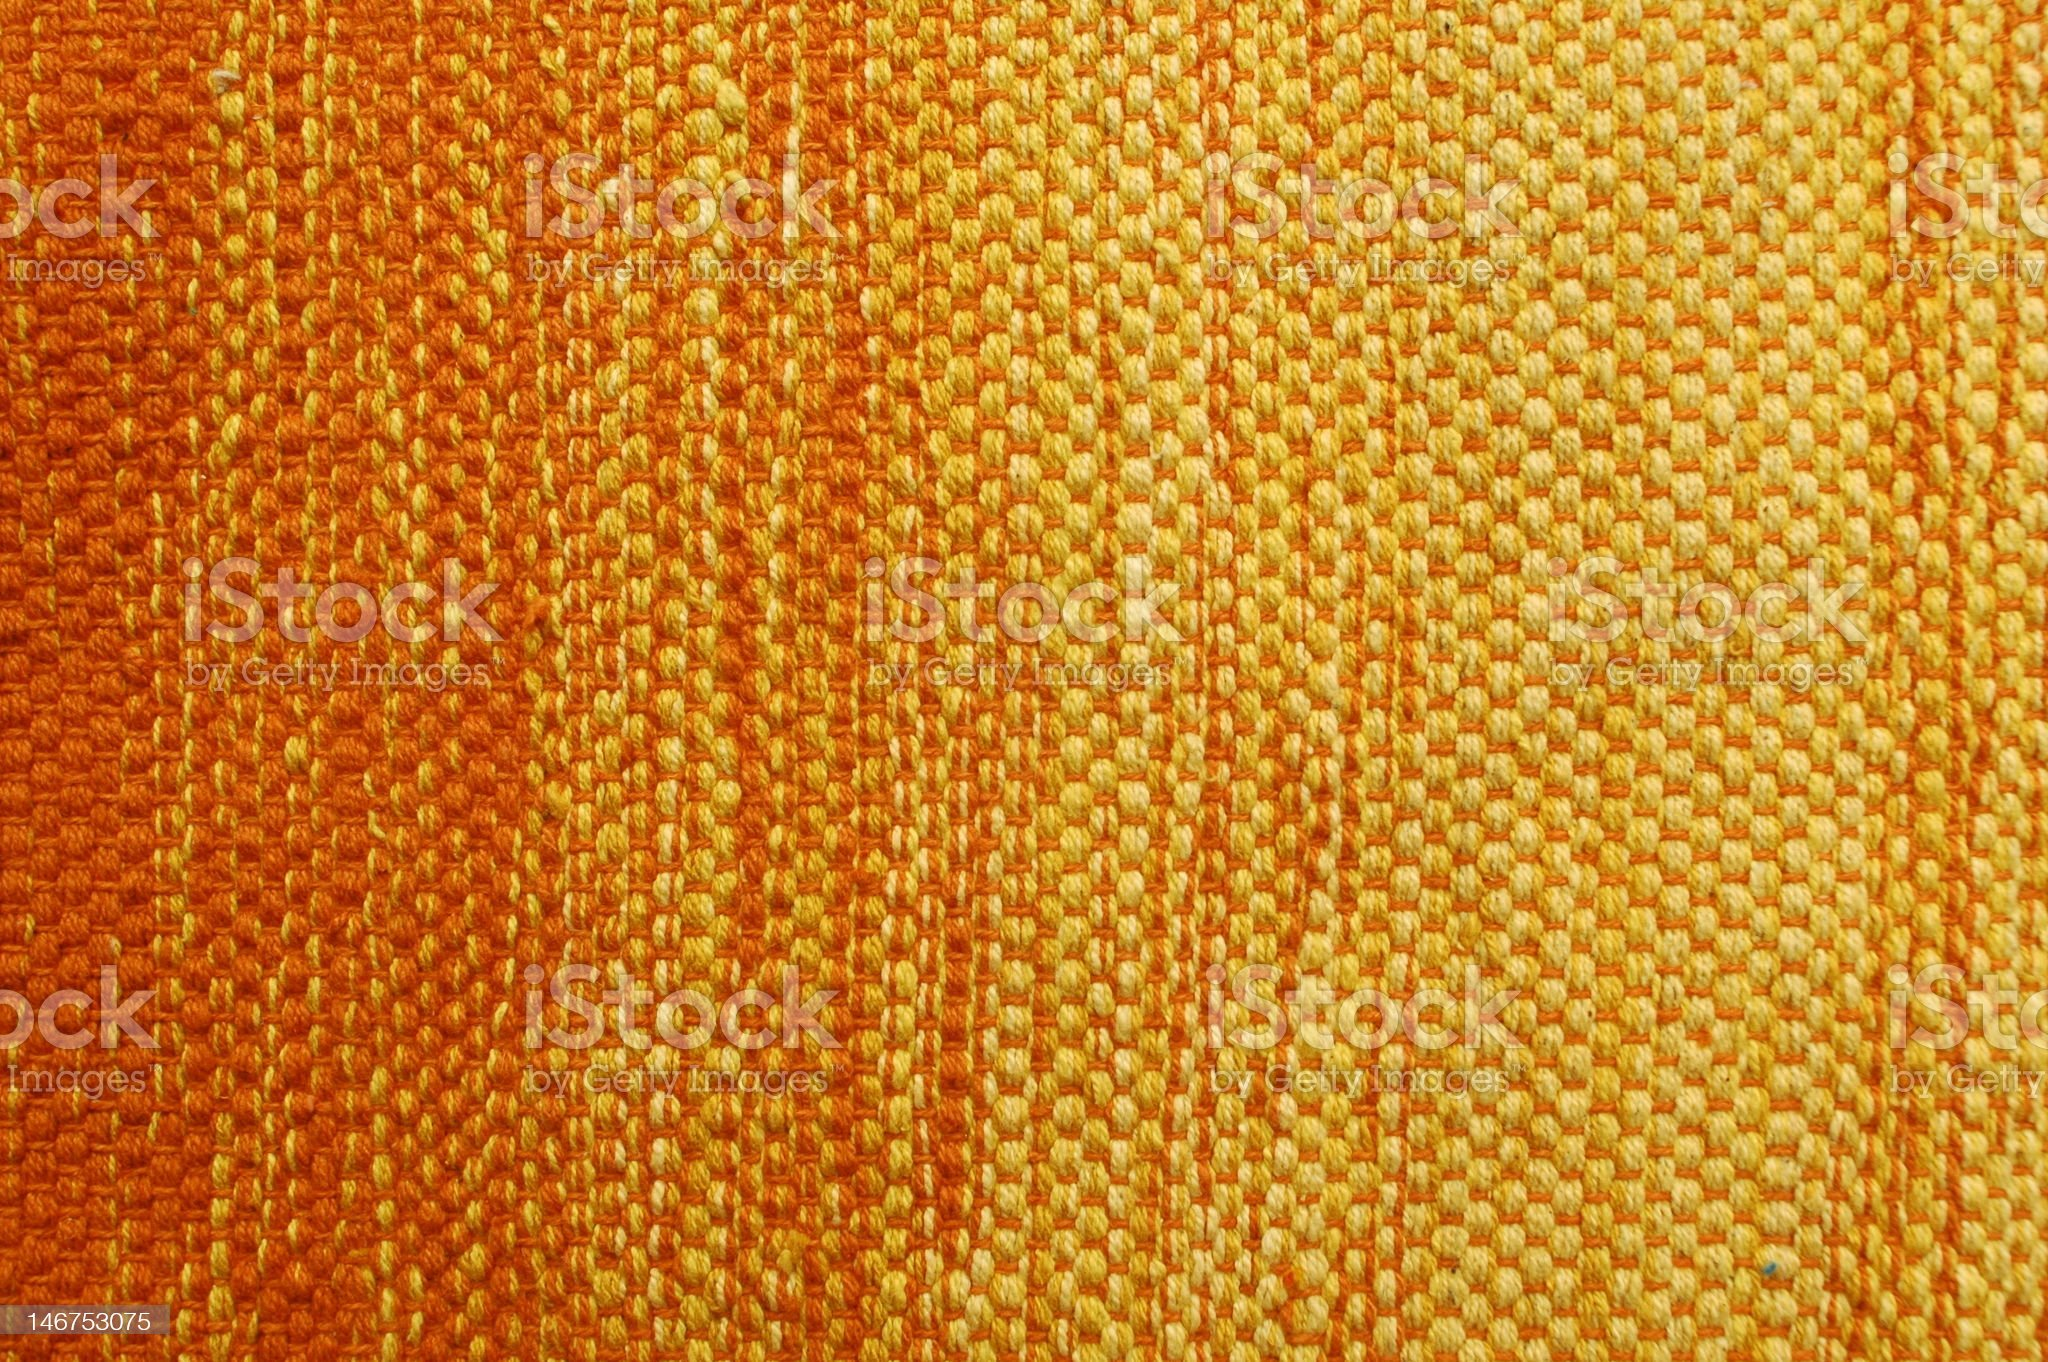 Indian Rug Texture royalty-free stock photo